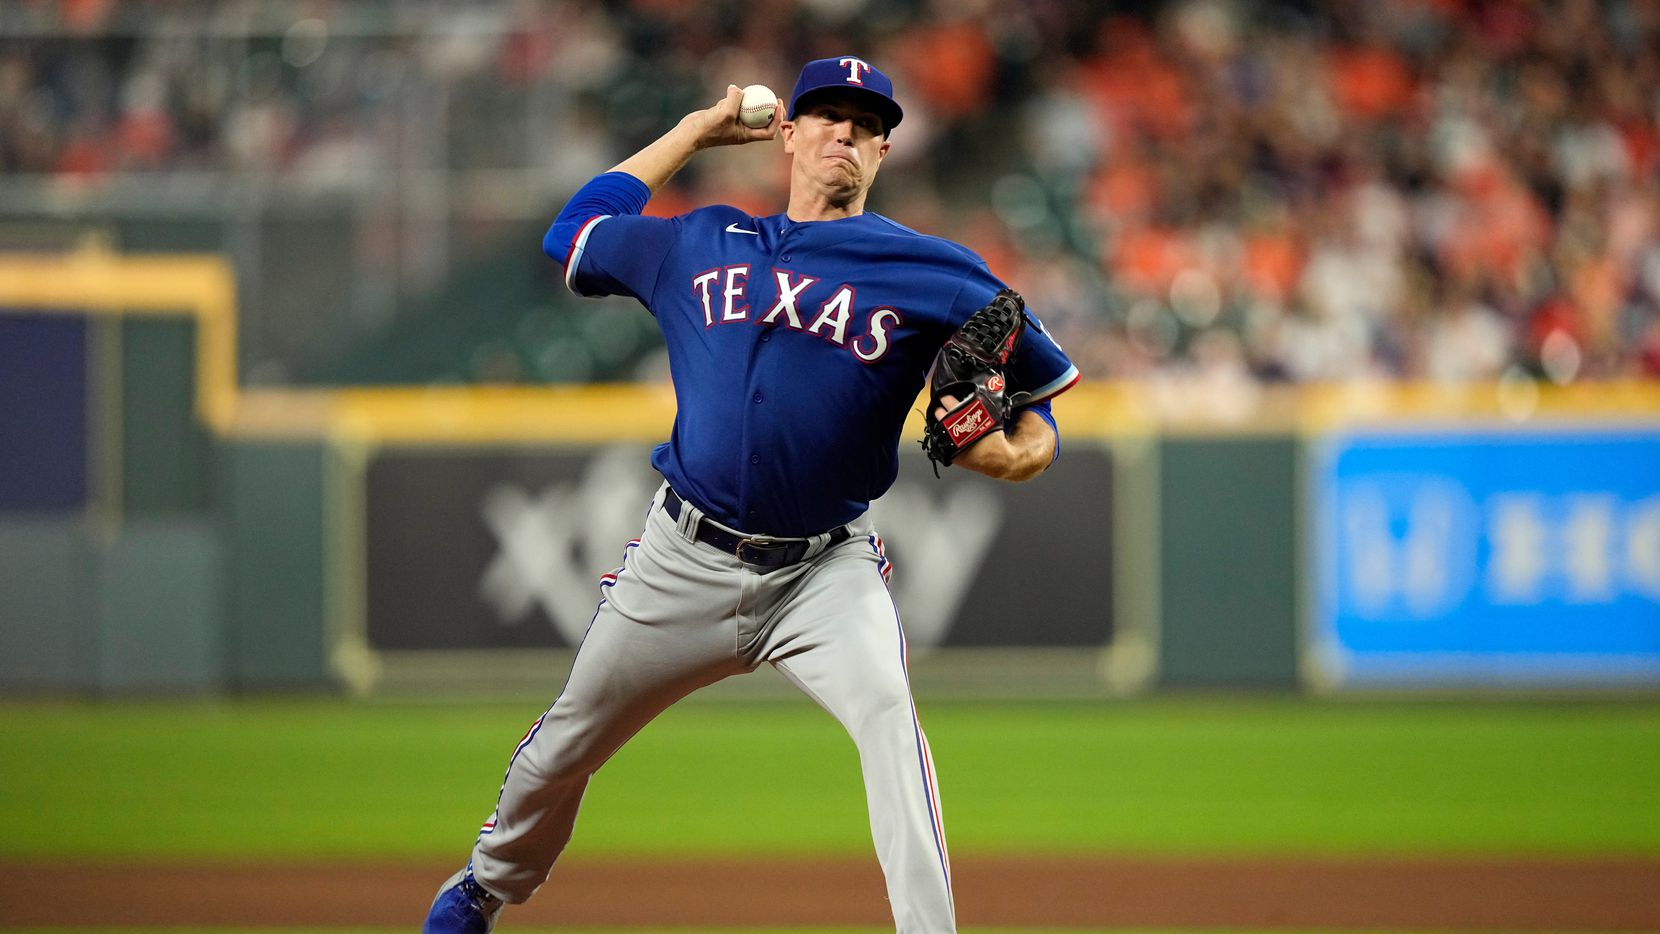 Texas Rangers starting pitcher Kyle Gibson throws against the Houston Astros during the first inning of a baseball game Tuesday, June 15, 2021, in Houston.